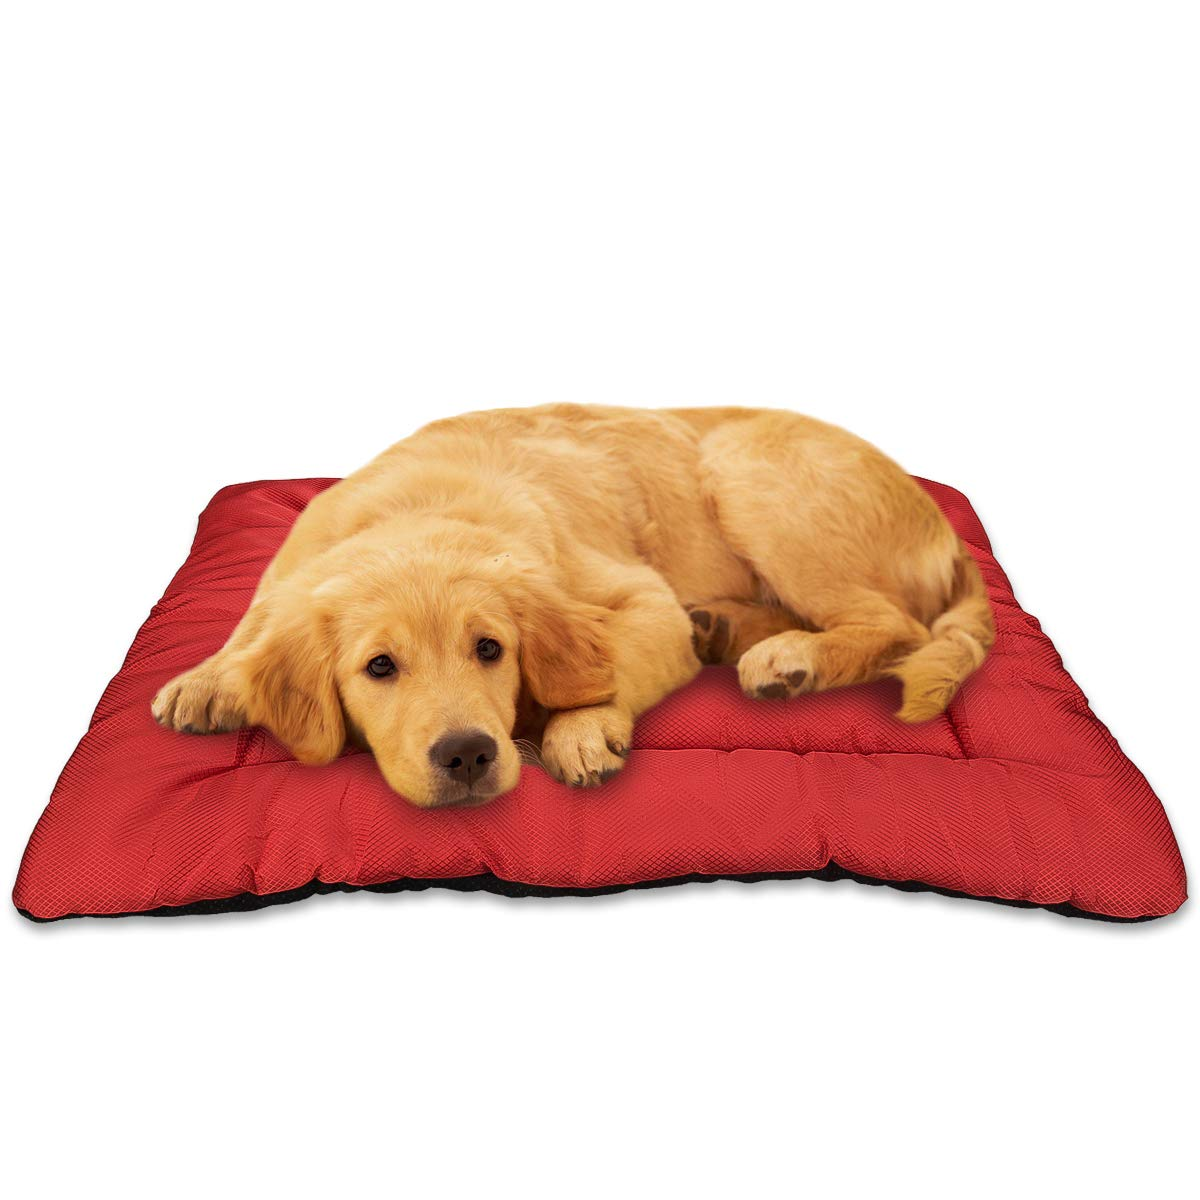 AIPERRO Dog Bed Crate Pad Washable Pet Mattress Kennel Sleeping Mat Oxford Chew Resistant Anti Slip 24/30/36/42 for Large Medium Small Dogs and Cats, Red (42-INCH)